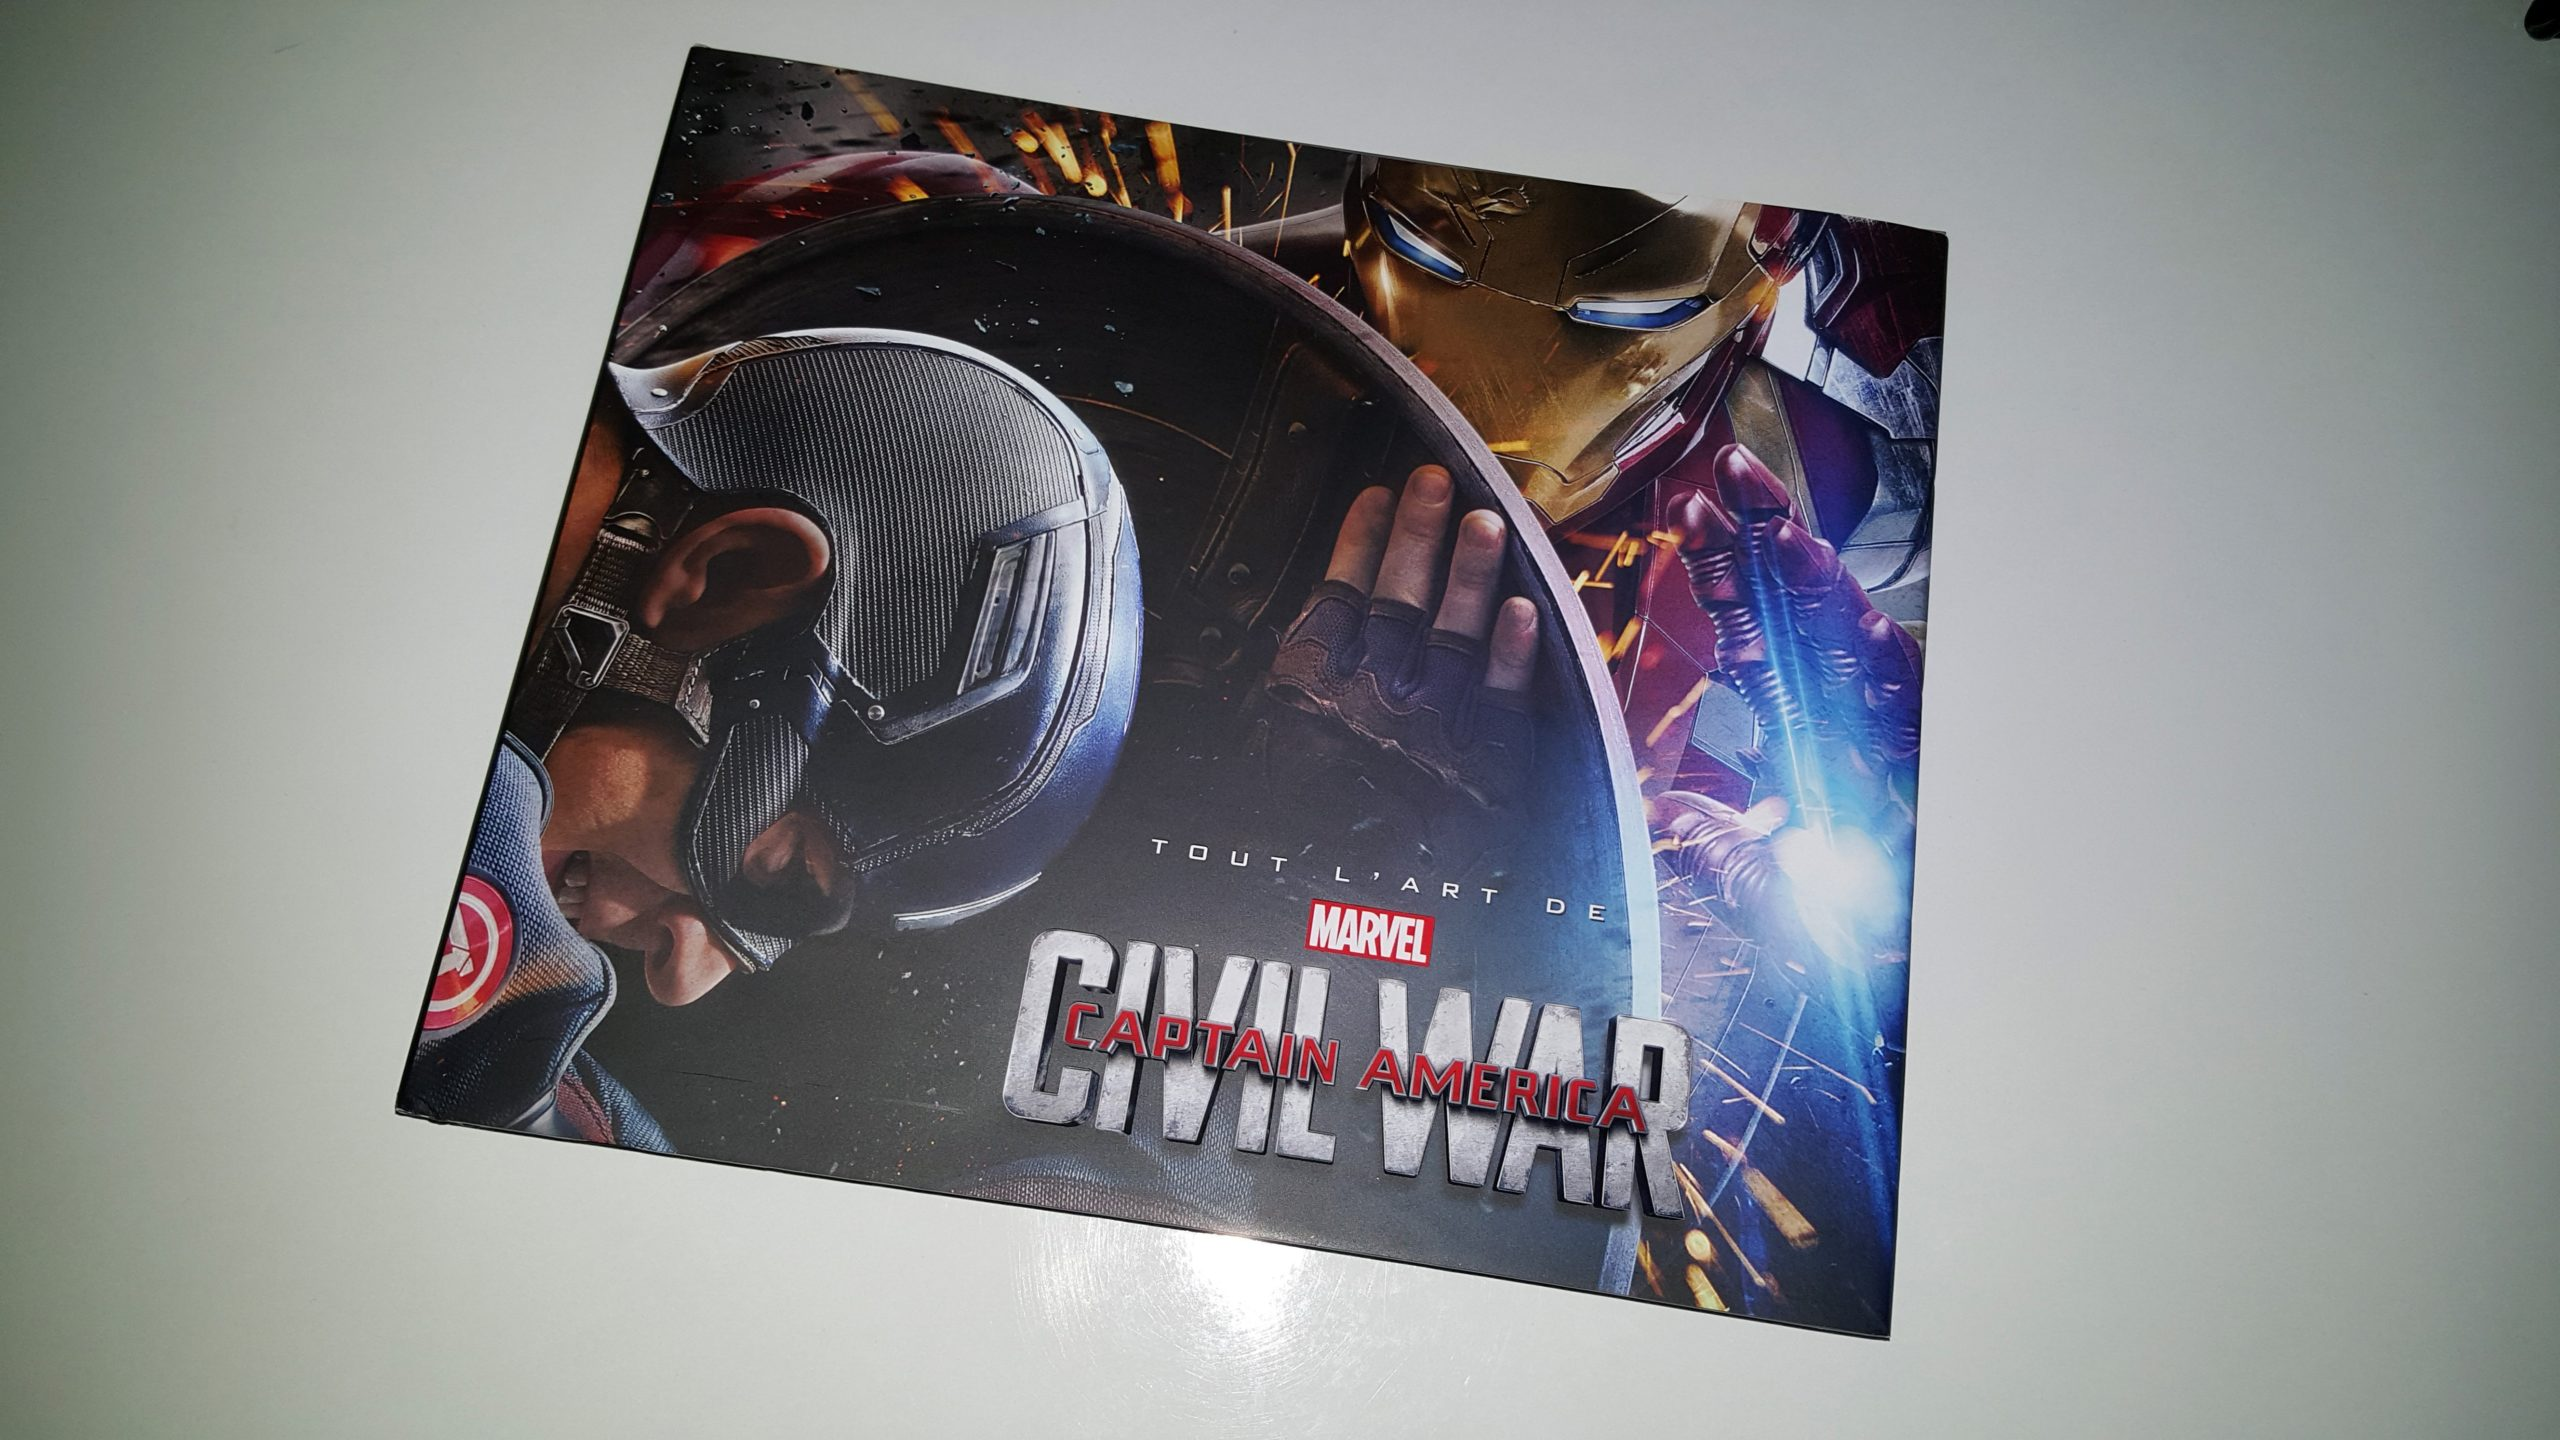 Photo de la couverture de Tout l'art de Captain America: Civil War